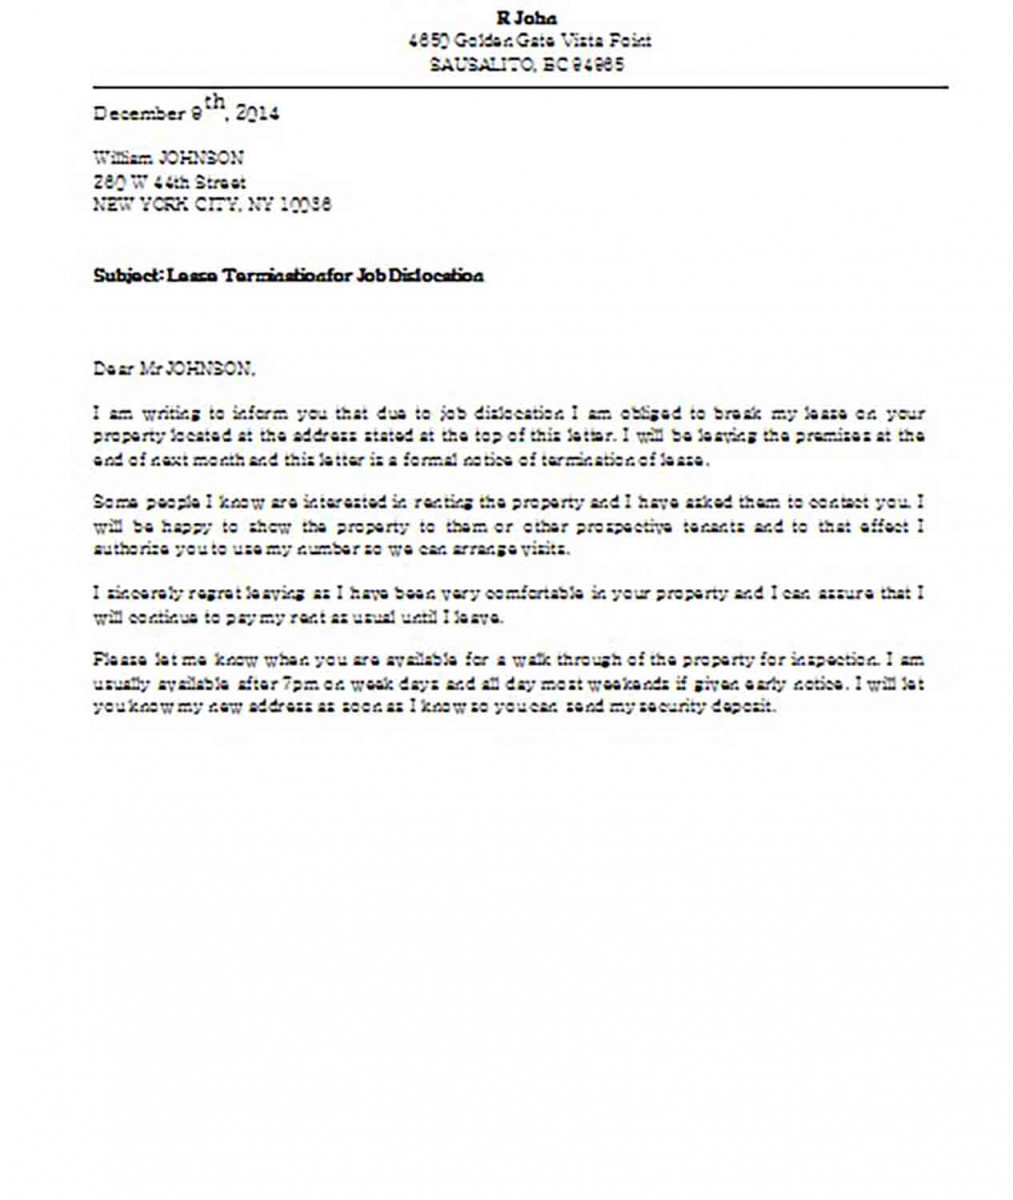 Lease Termination for Job Dislocation Letter